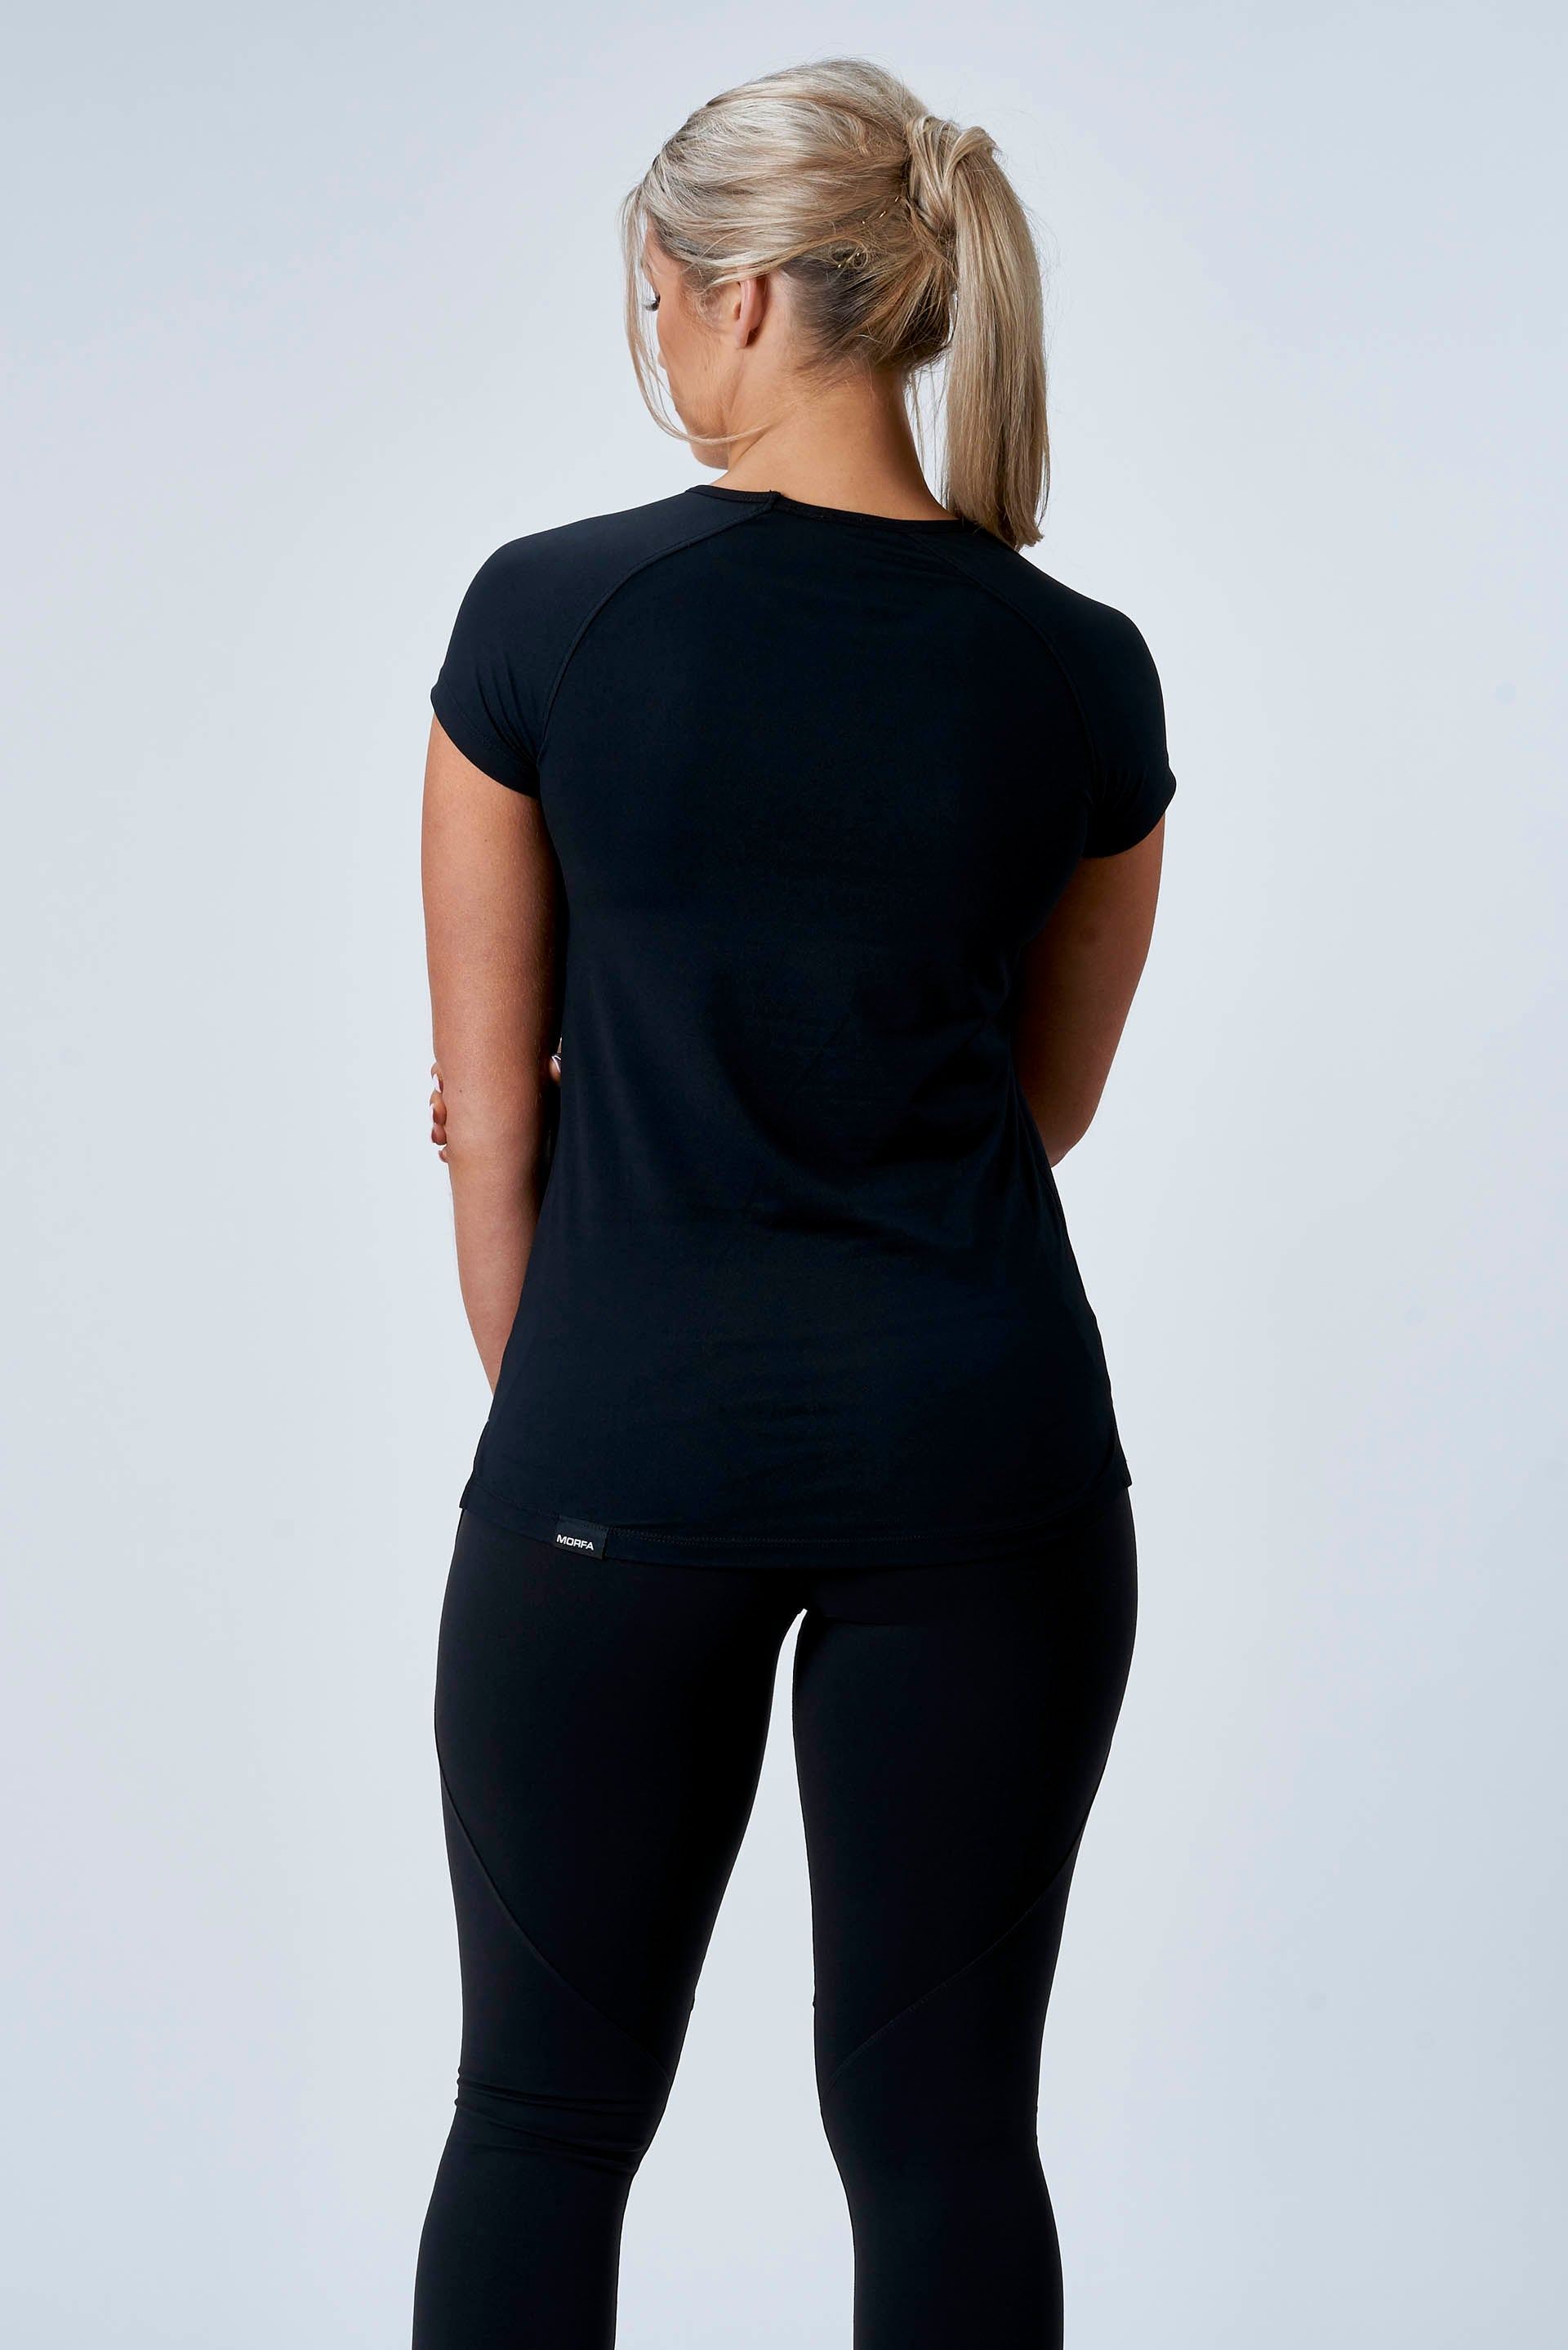 CarbonTech - ATHLETIC TEE - BLACK